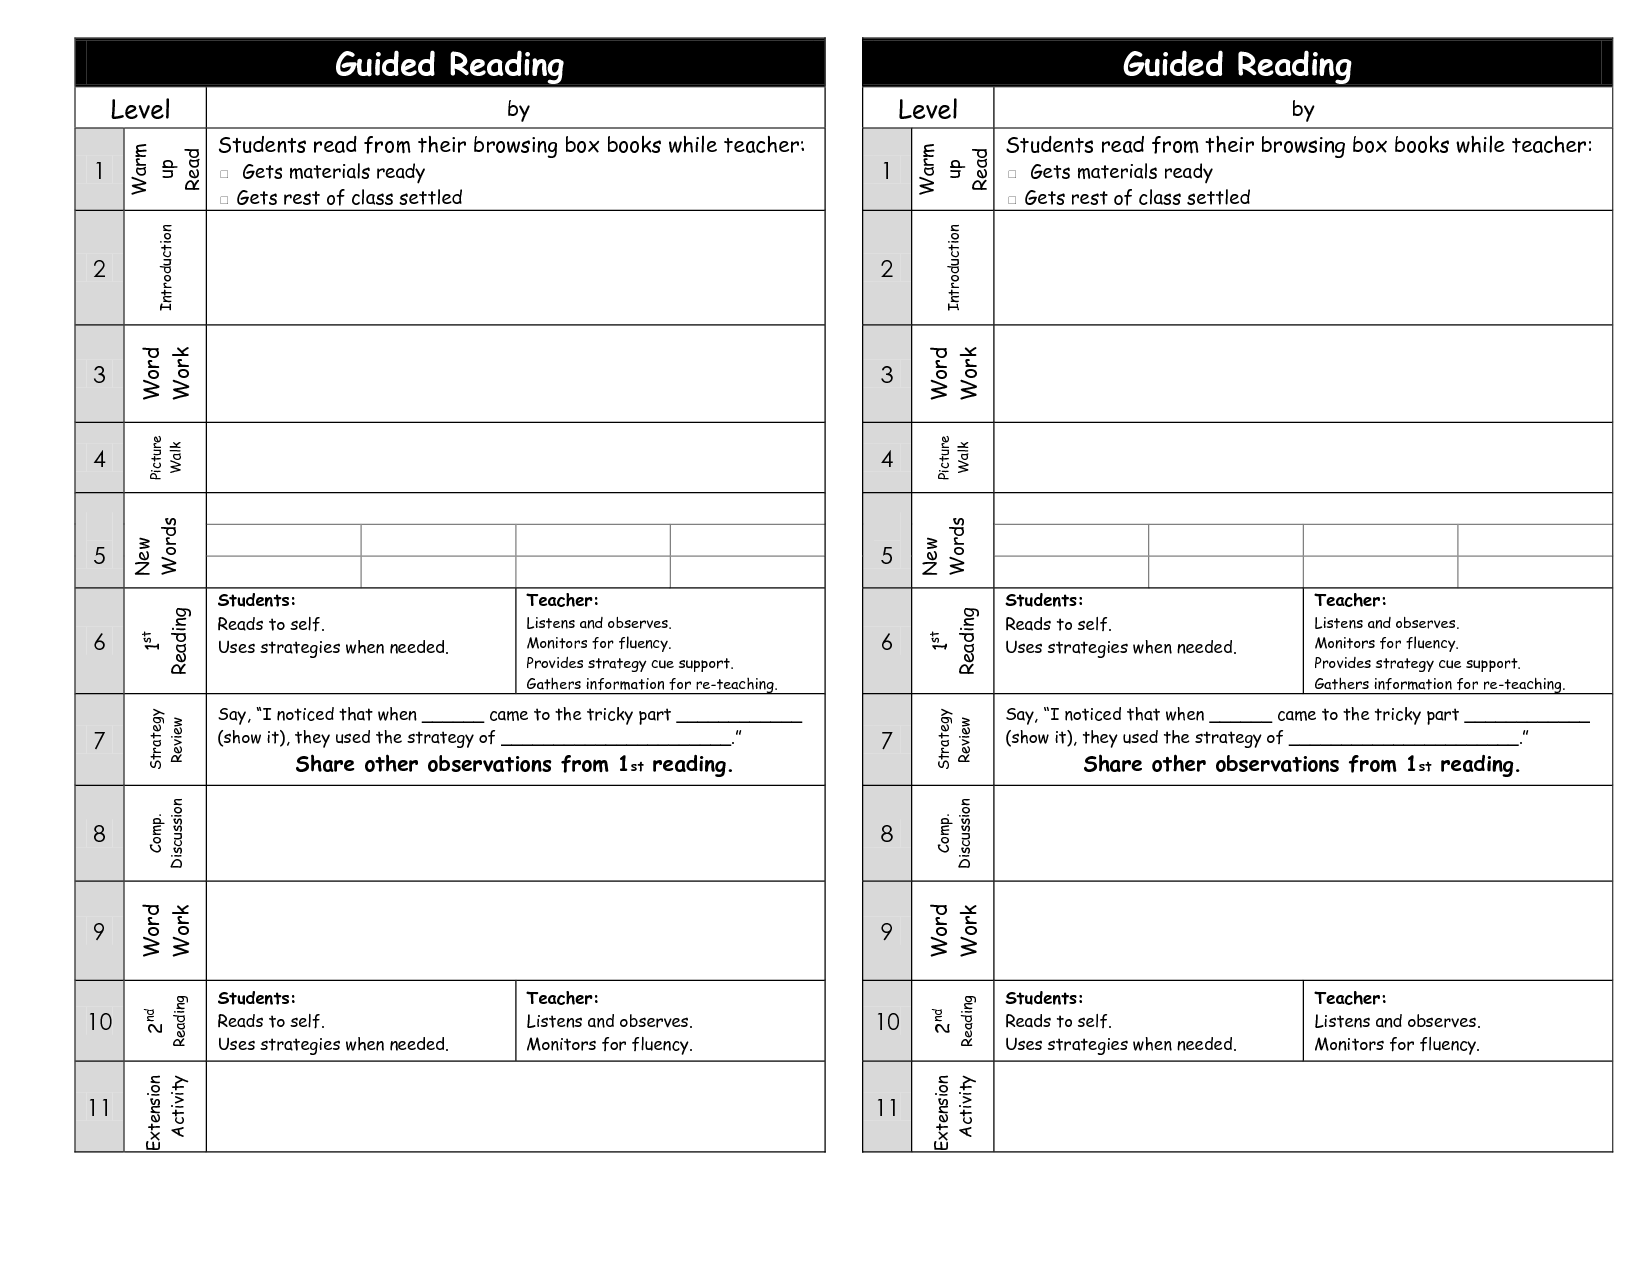 Guided Reading Templates Guided Reading Plan Template Reading Lesson Plans Reading Lesson Plan Template [ 1275 x 1650 Pixel ]